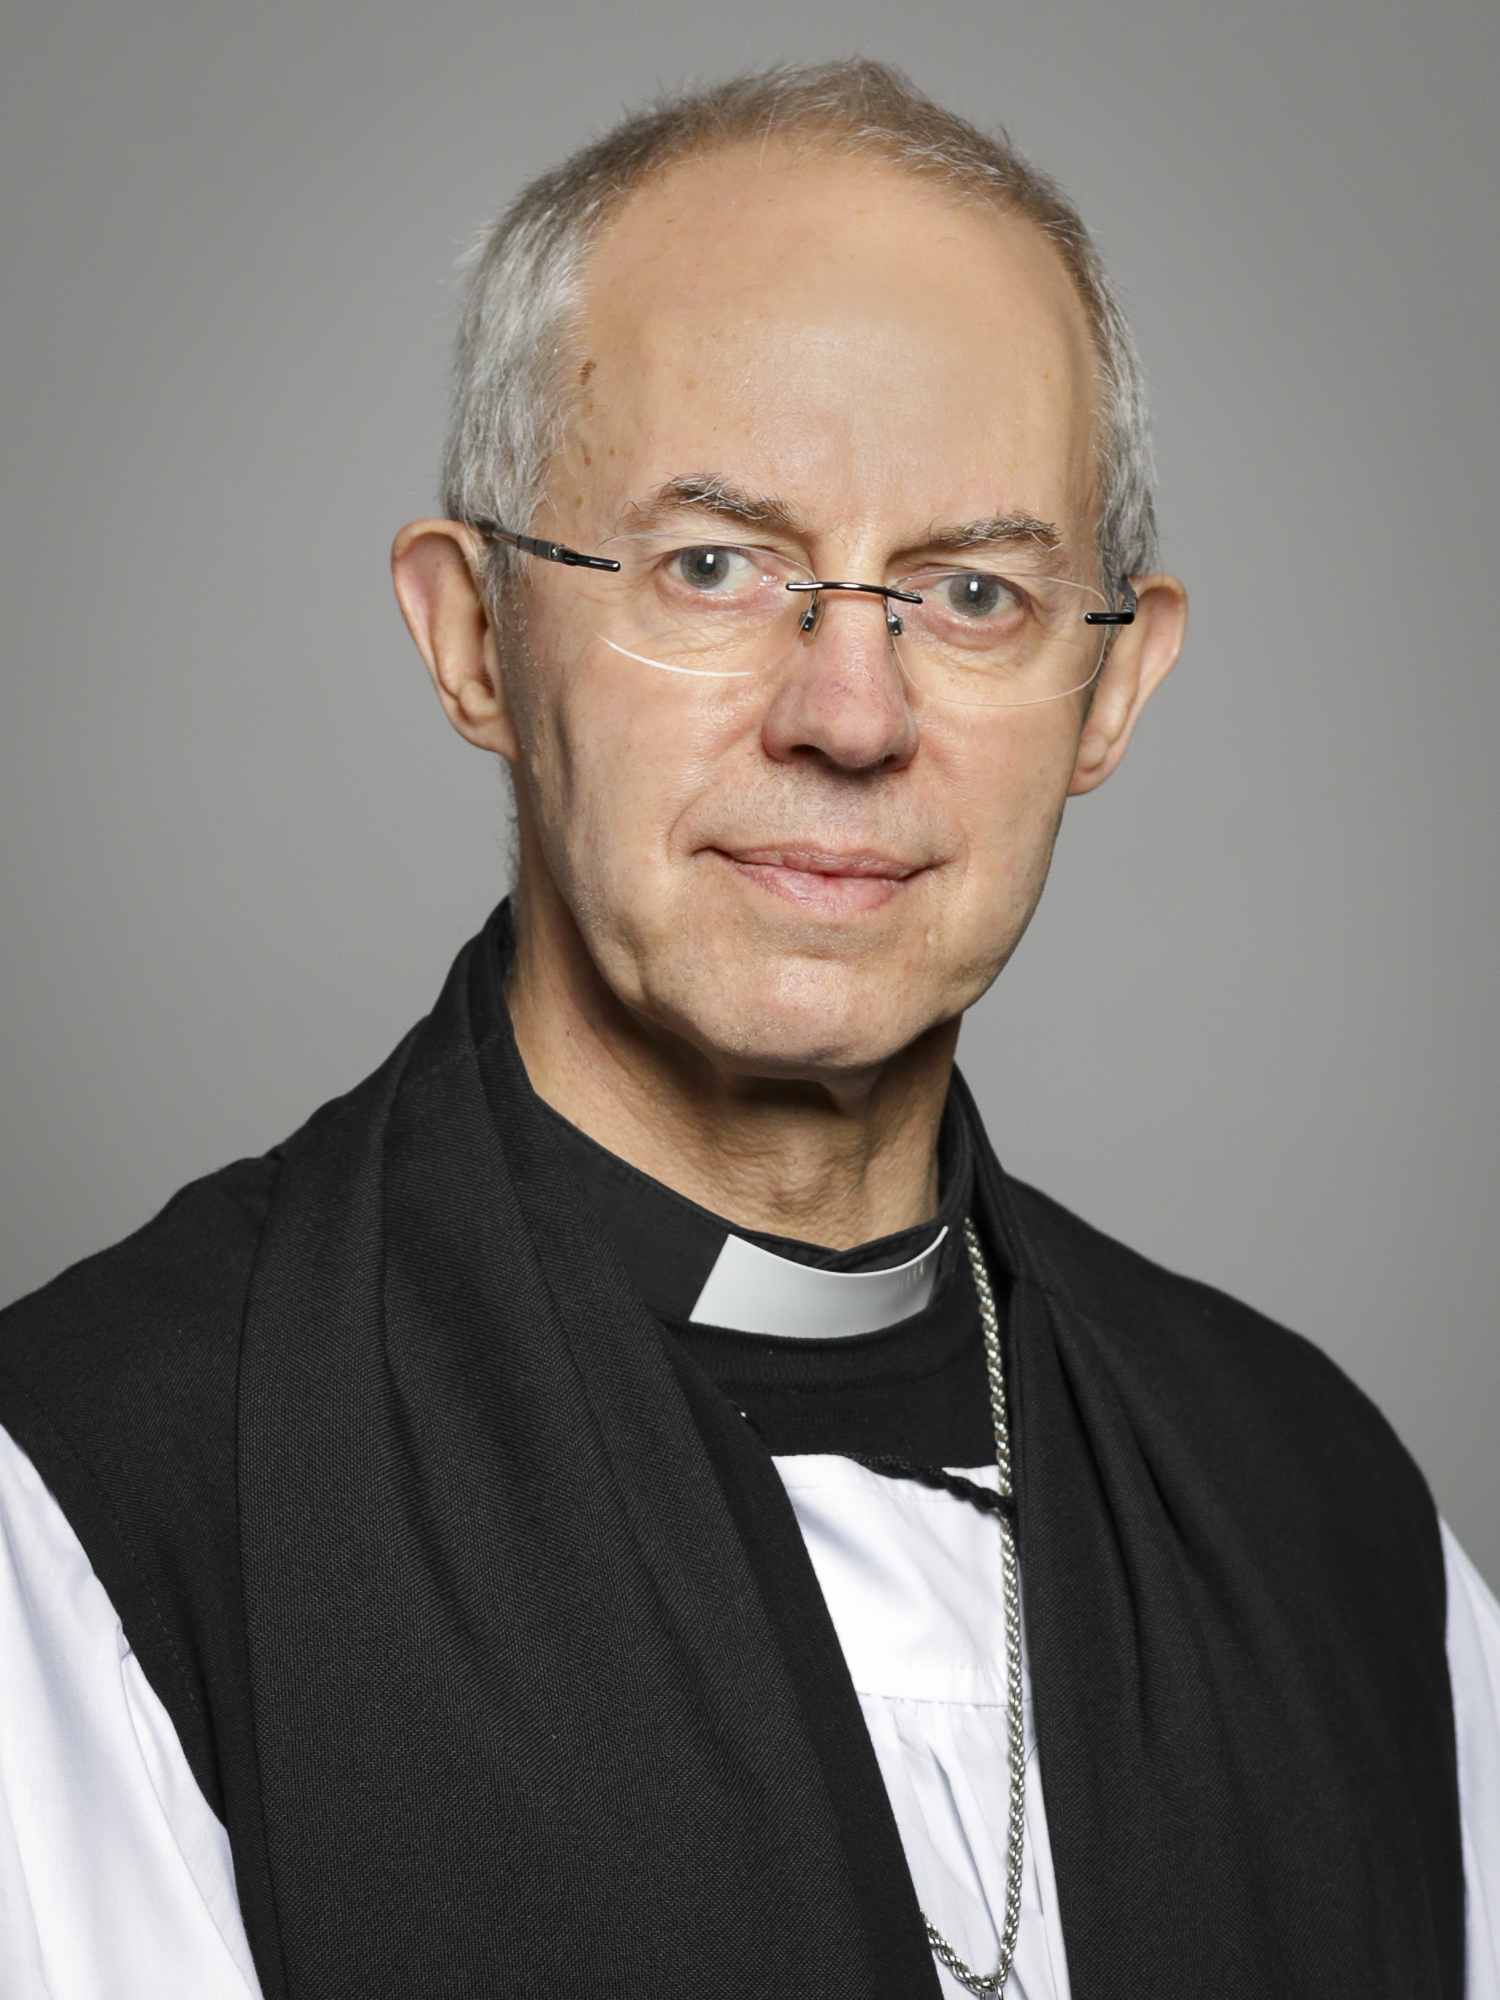 Archbishop of Canterbury, the Most Reverend Justin Welby